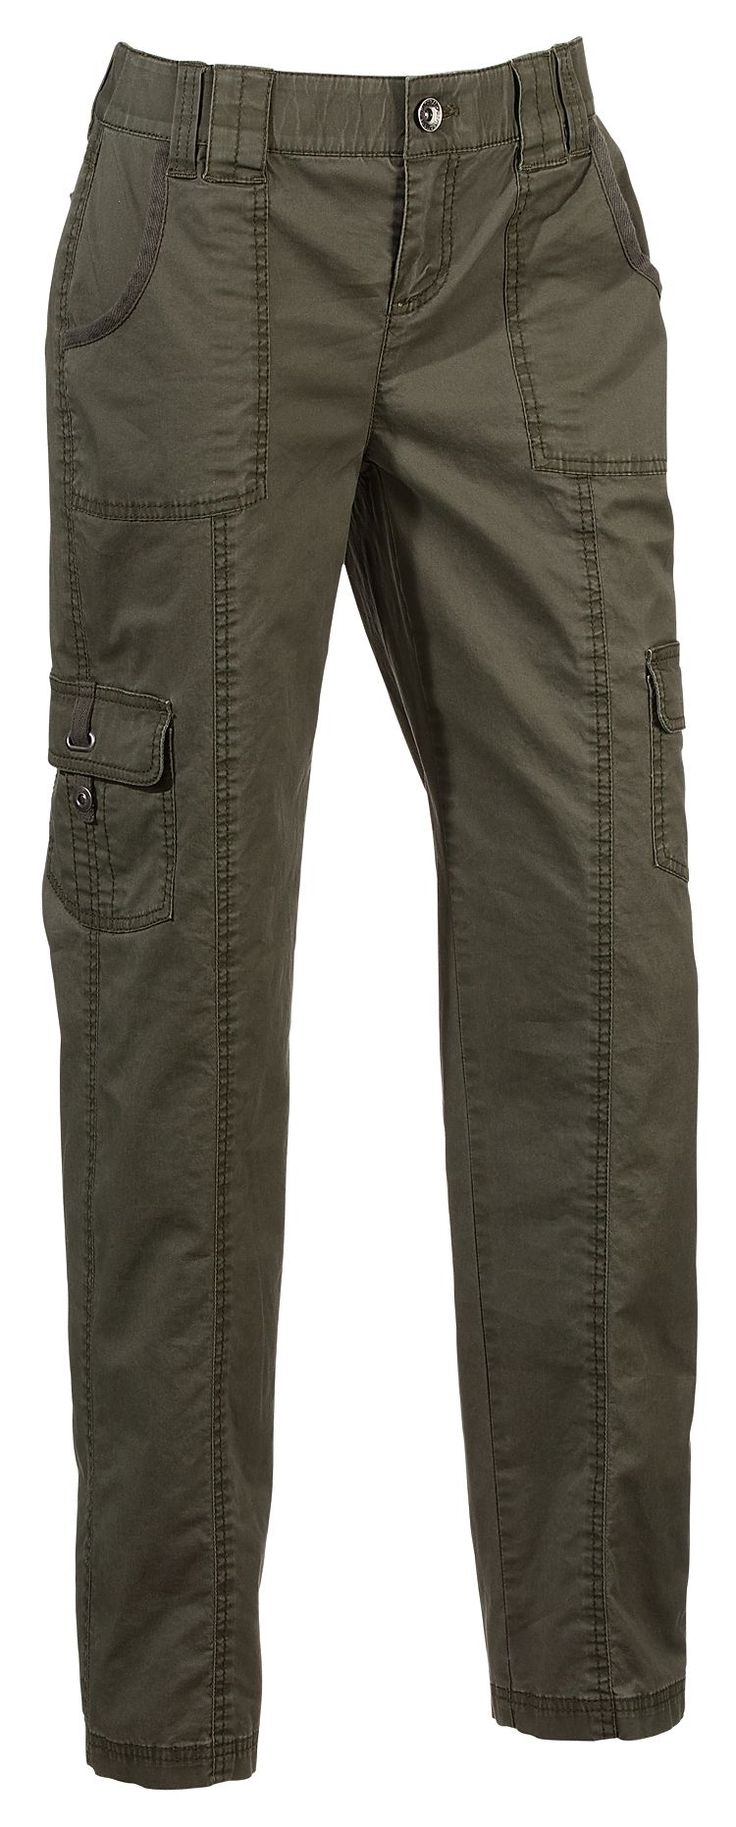 Buy the latest cargo pants cheap shop fashion style with free shipping, and check out our daily updated new arrival cargo pants at venchik.ml